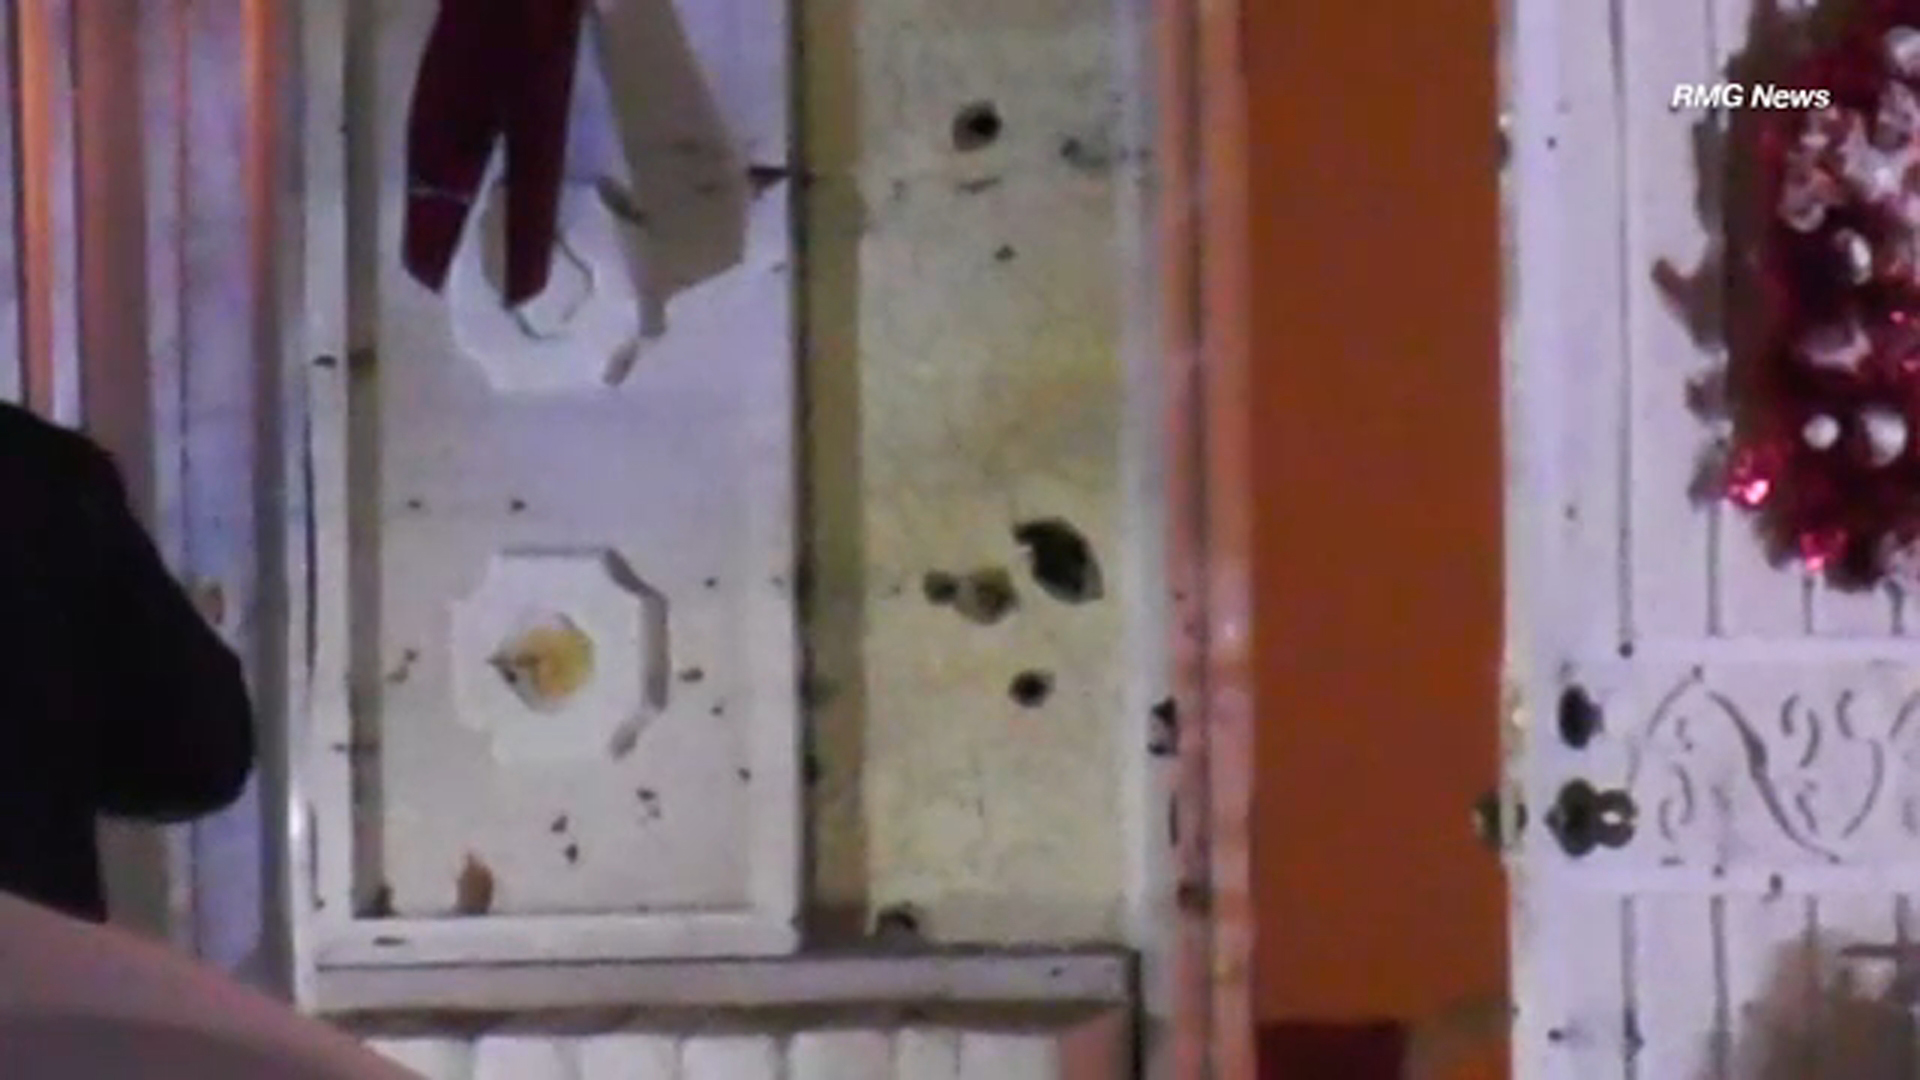 A Hemet home was left riddled with bullets after a suspect engaged in a shootout with police Wednesday night.